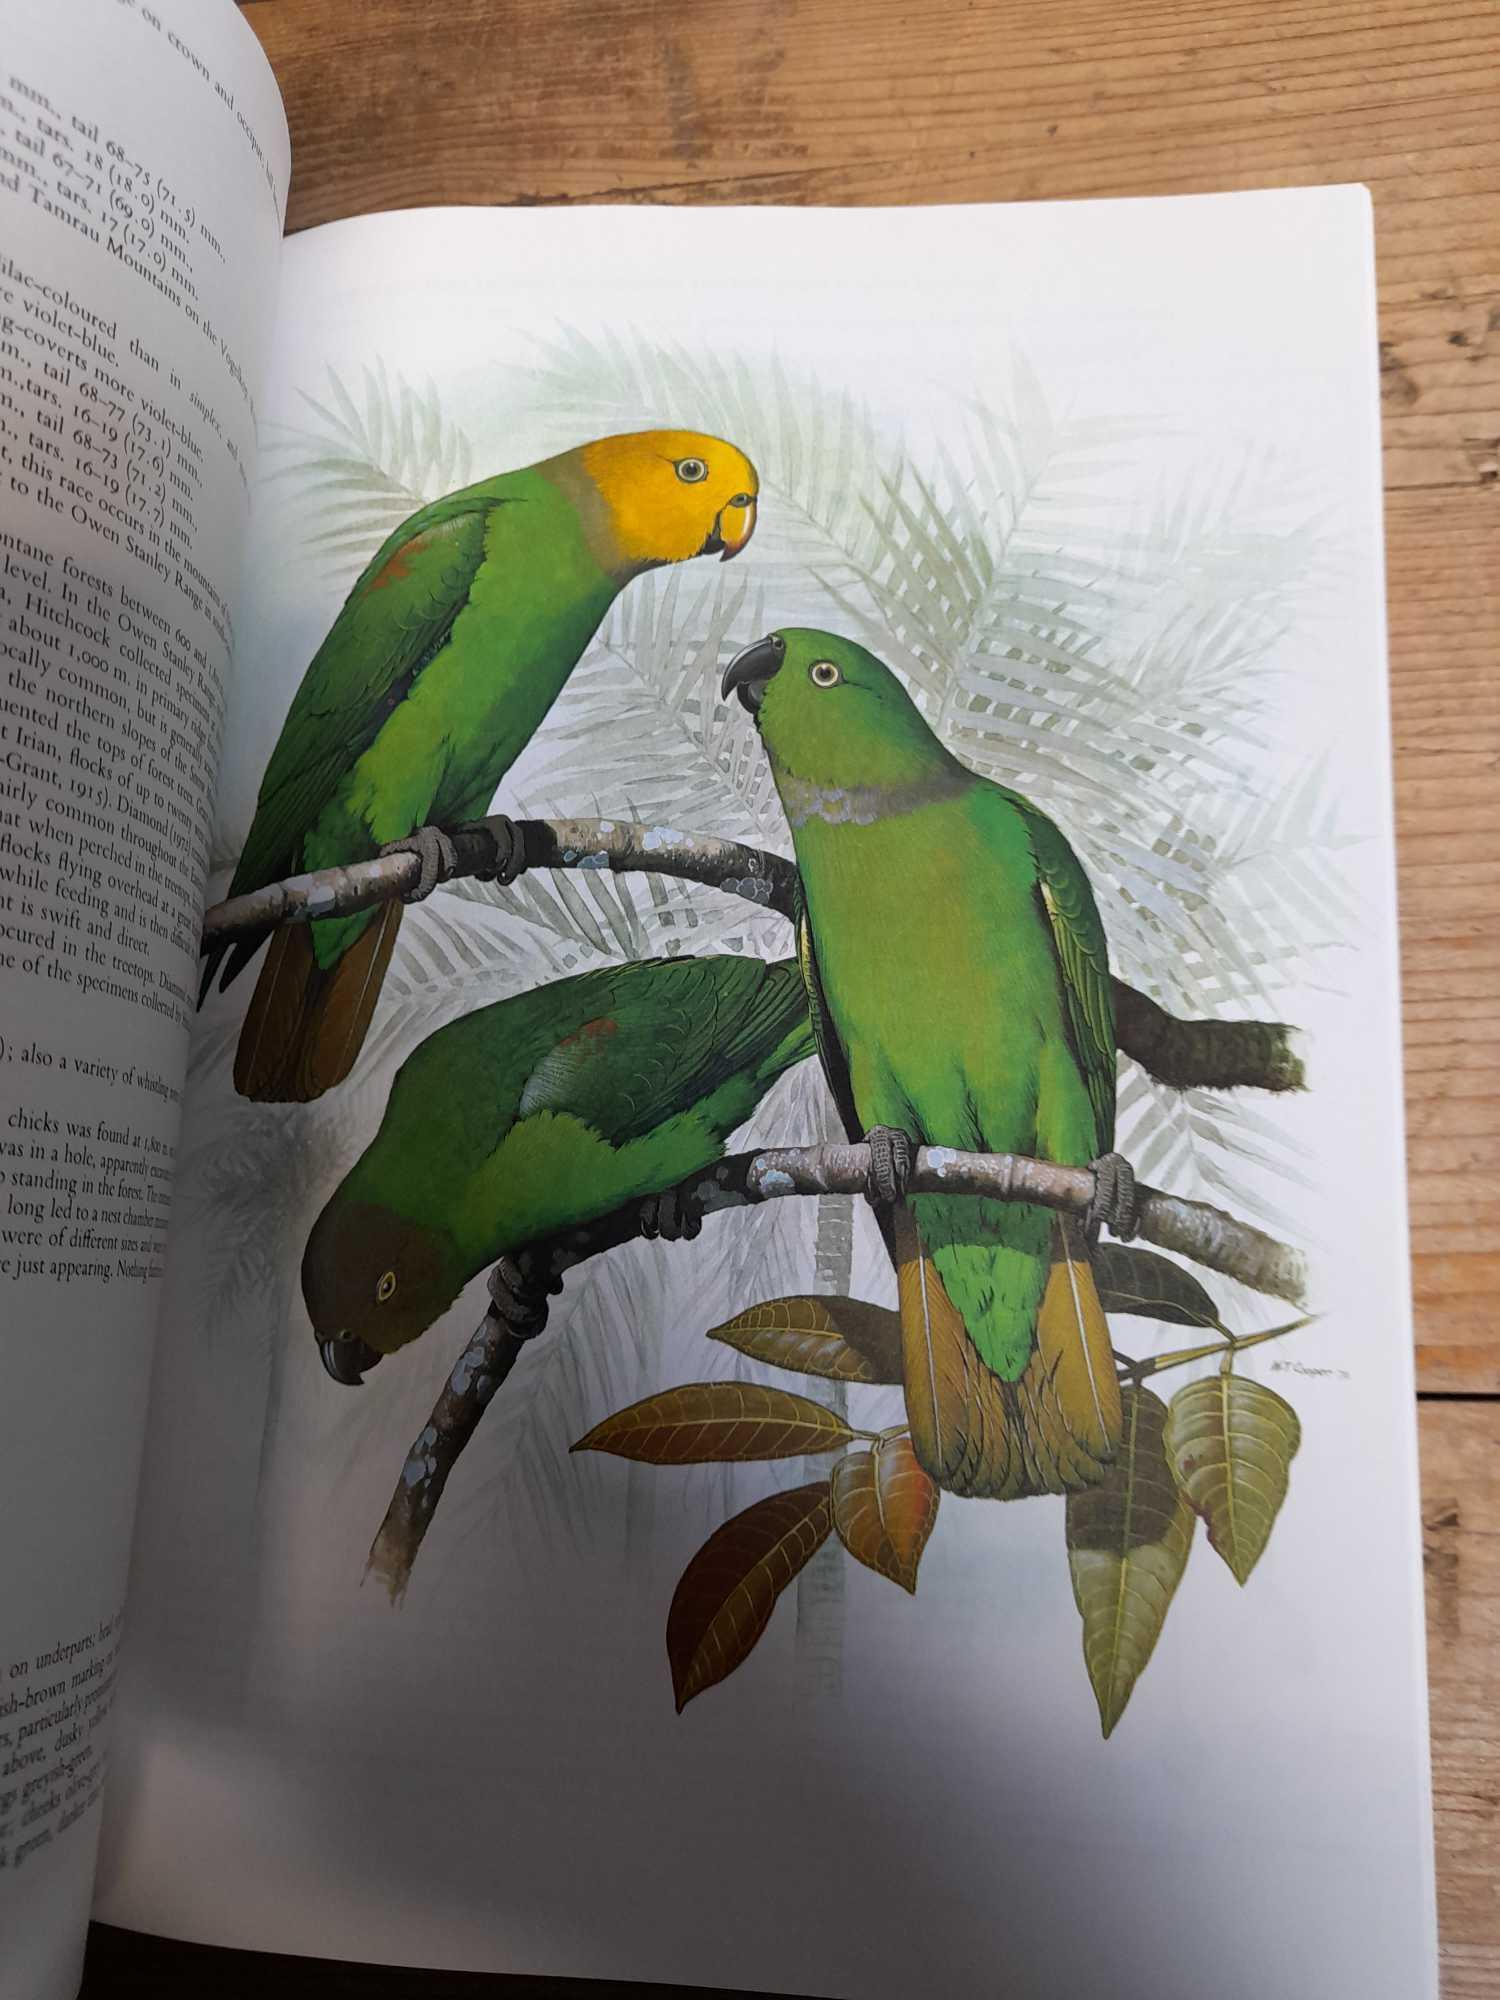 3 PARROT BOOKS - Image 12 of 20